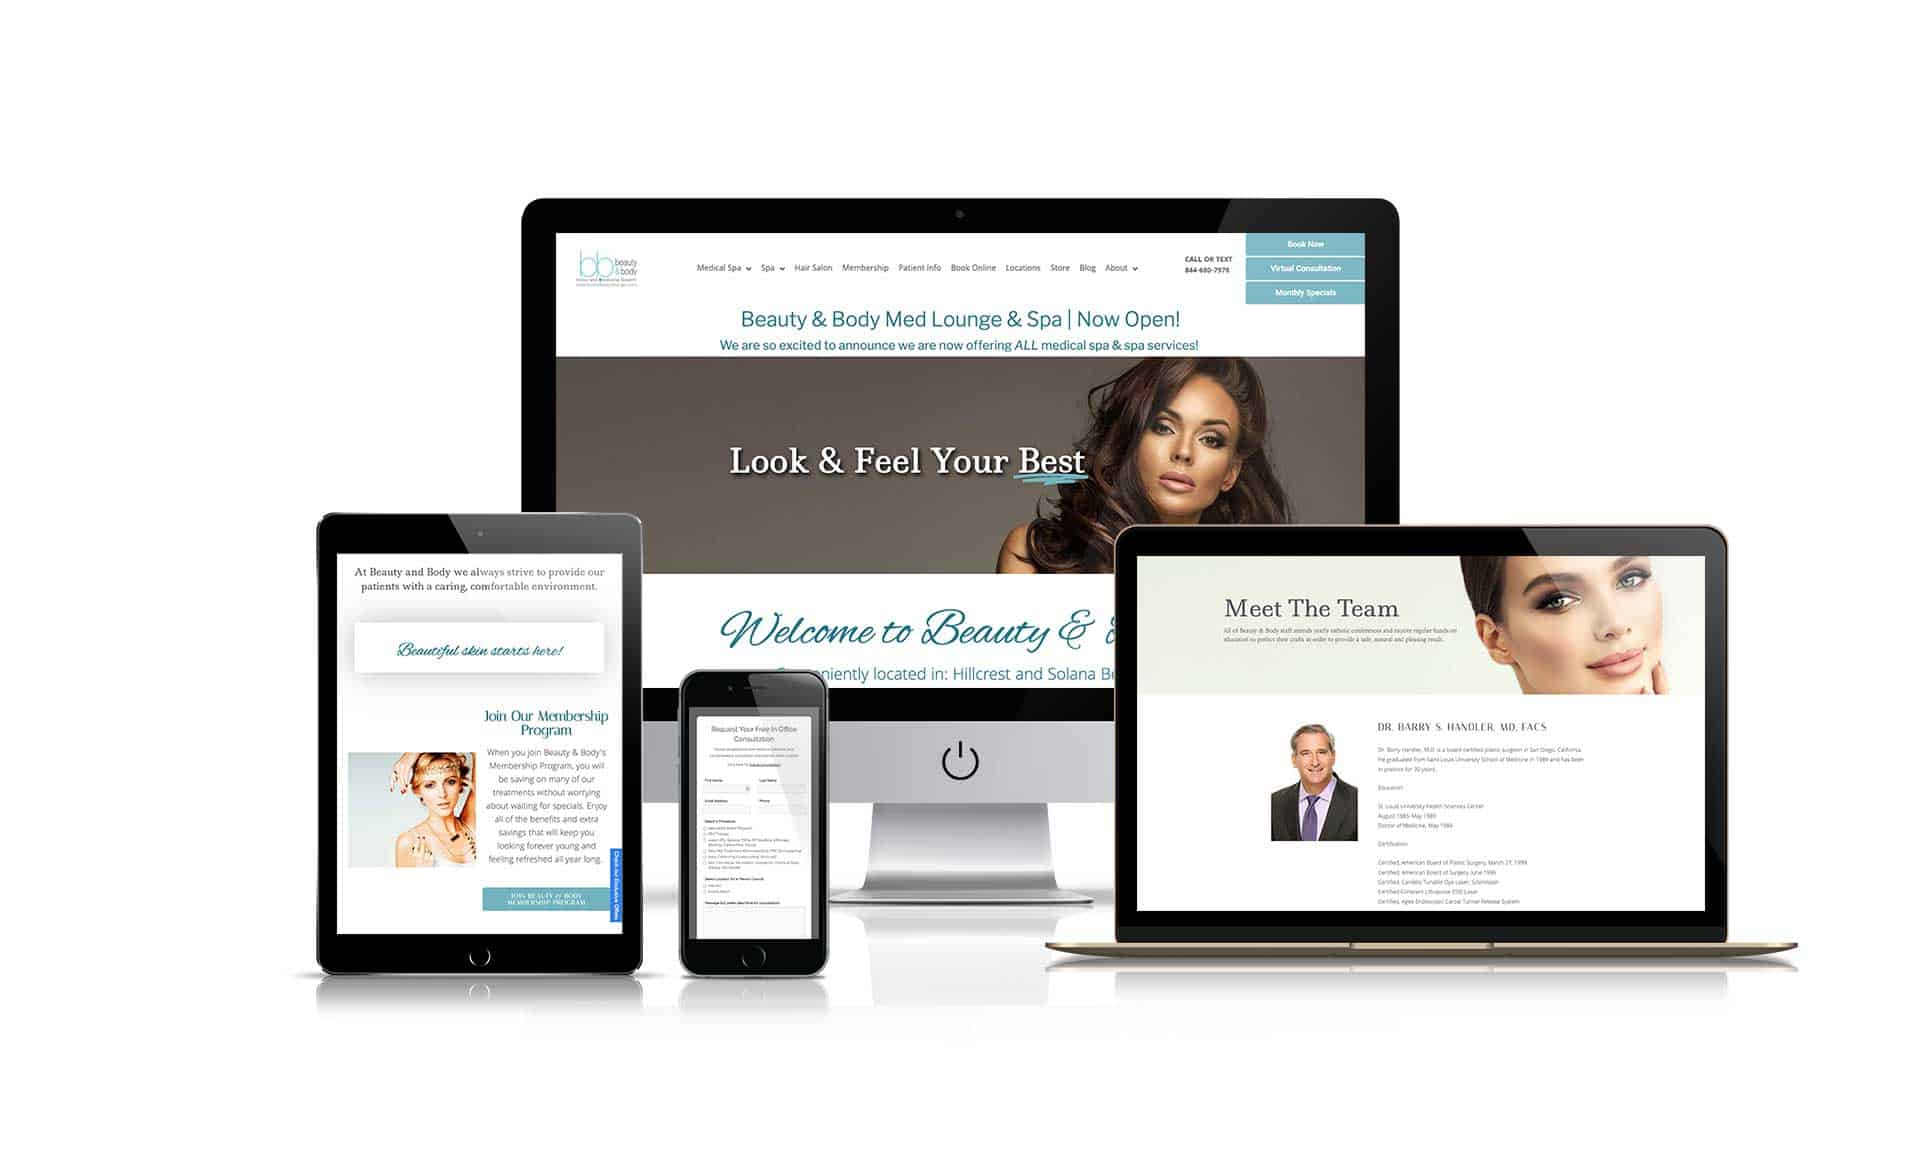 Beauty and Body Medlounge Spa - Website Design - Hillcrest